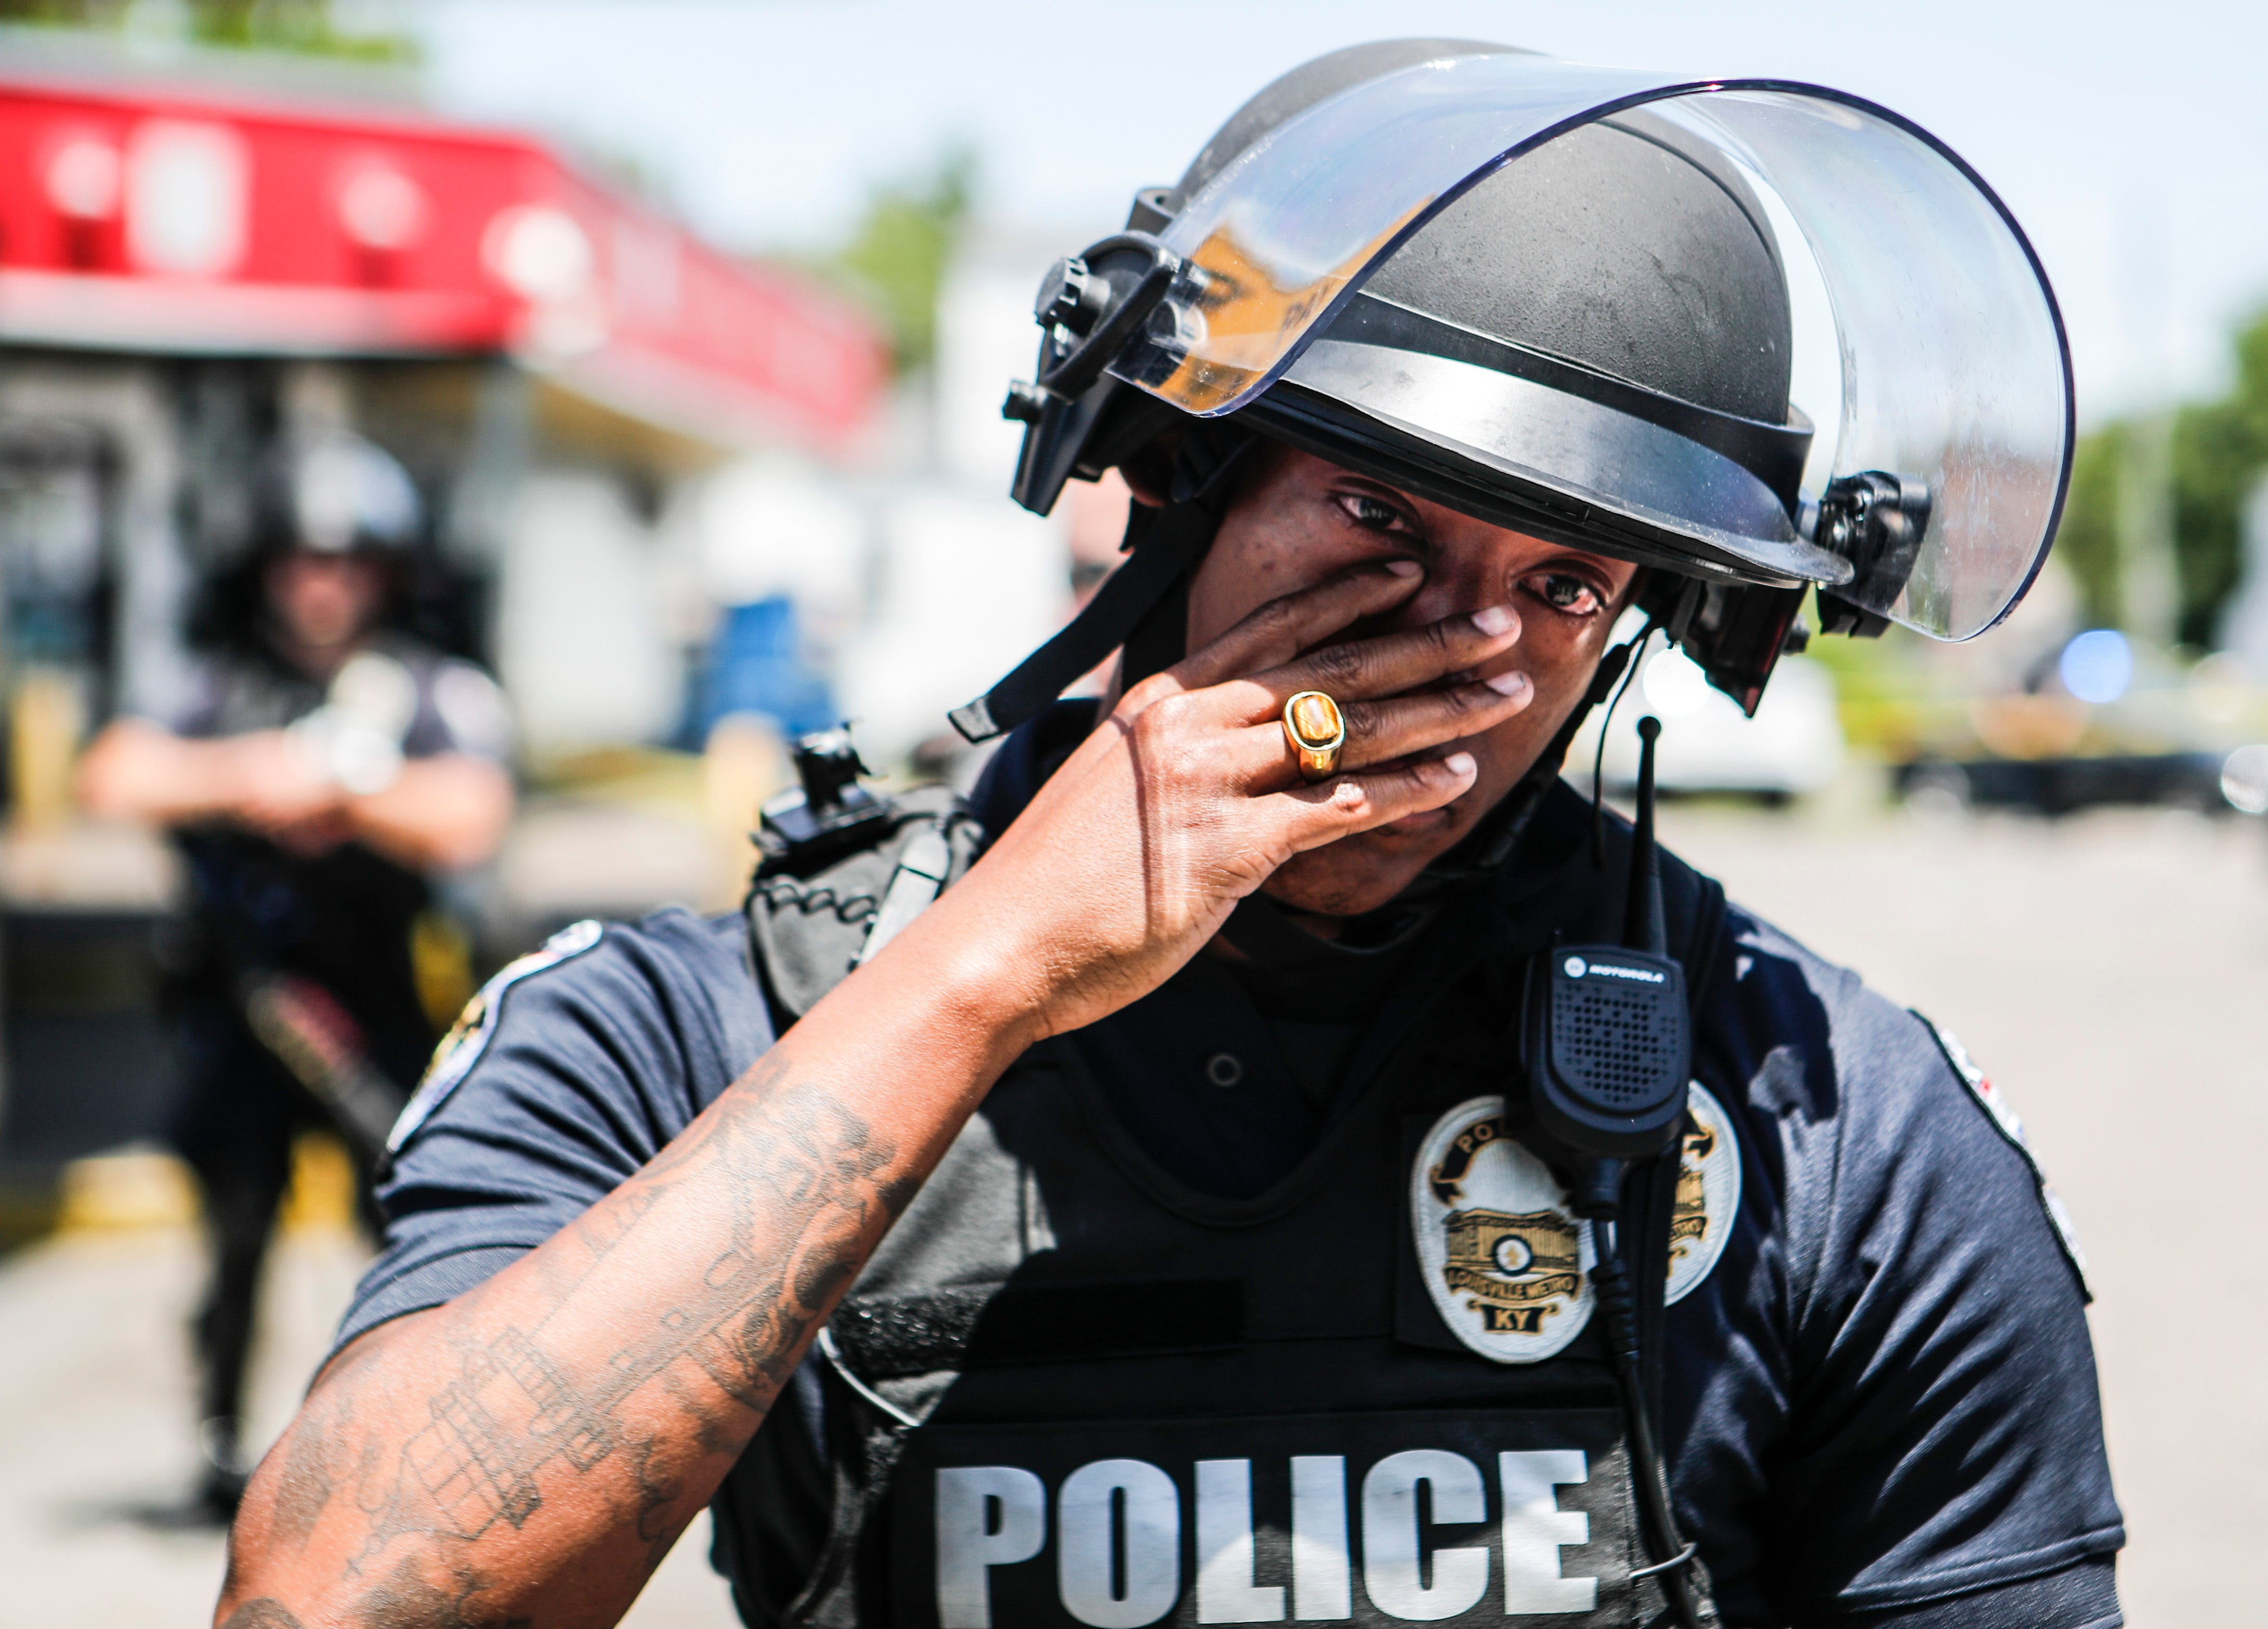 LMPD officer Christian Lewis wipes tears away after hugging a few citizens as hundreds gathered to protest the death of David McAtee, a beloved BBQ owner who was shot and killed amid gunfire by LMPD and Kentucky National Guard early Monday morning near 26th and Broadway in West Louisville. June 1, 2020